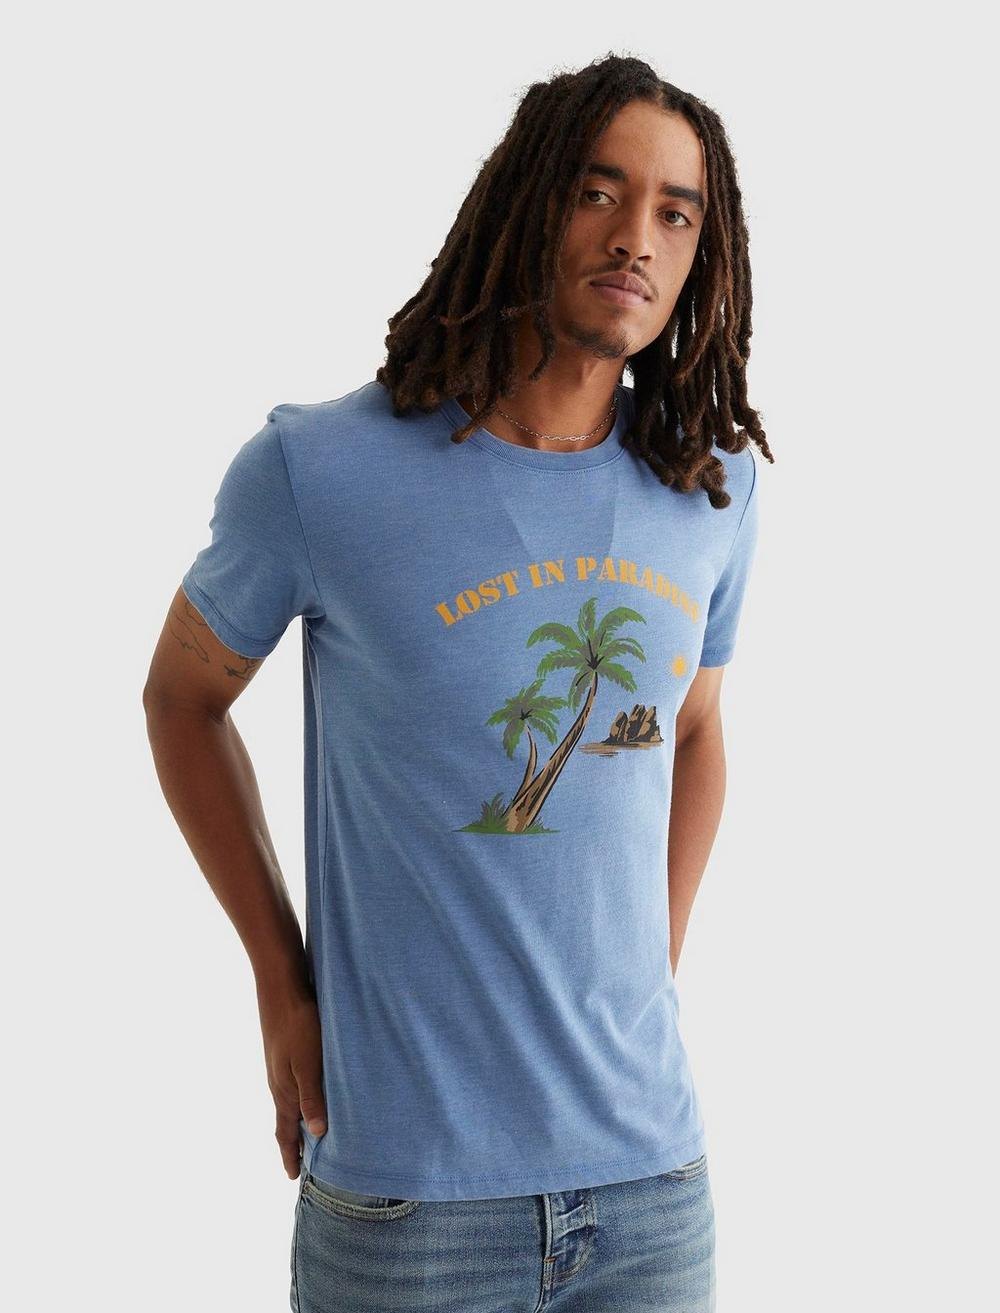 LOST IN PARADISE TEE, image 1